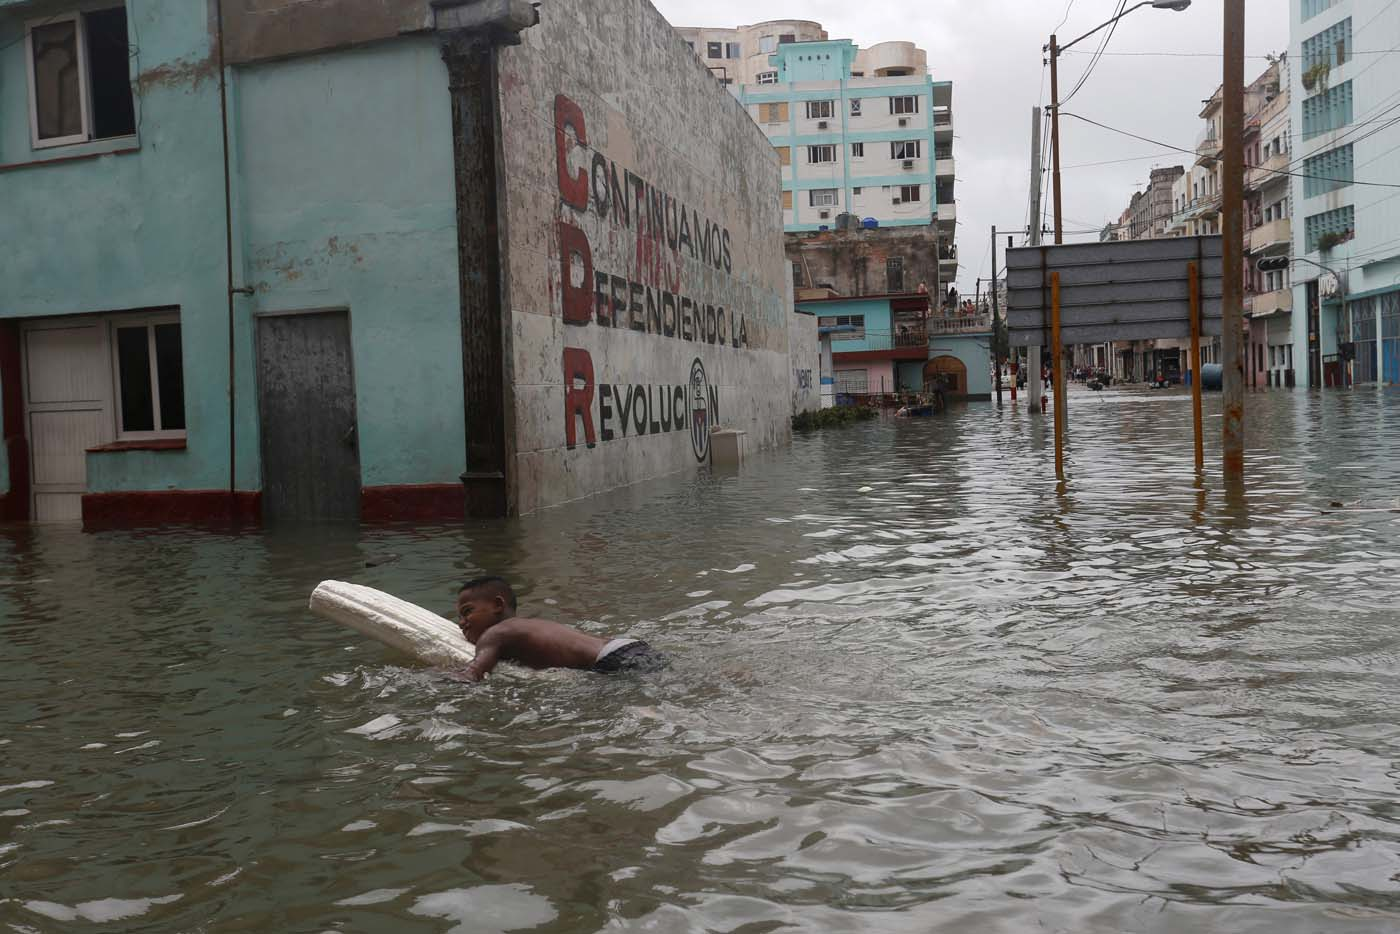 A boy floats with a foam board in a flooded street, after the passing of Hurricane Irma, in Havana, Cuba September 10, 2017. REUTERS/Stringer NO SALES. NO ARCHIVES